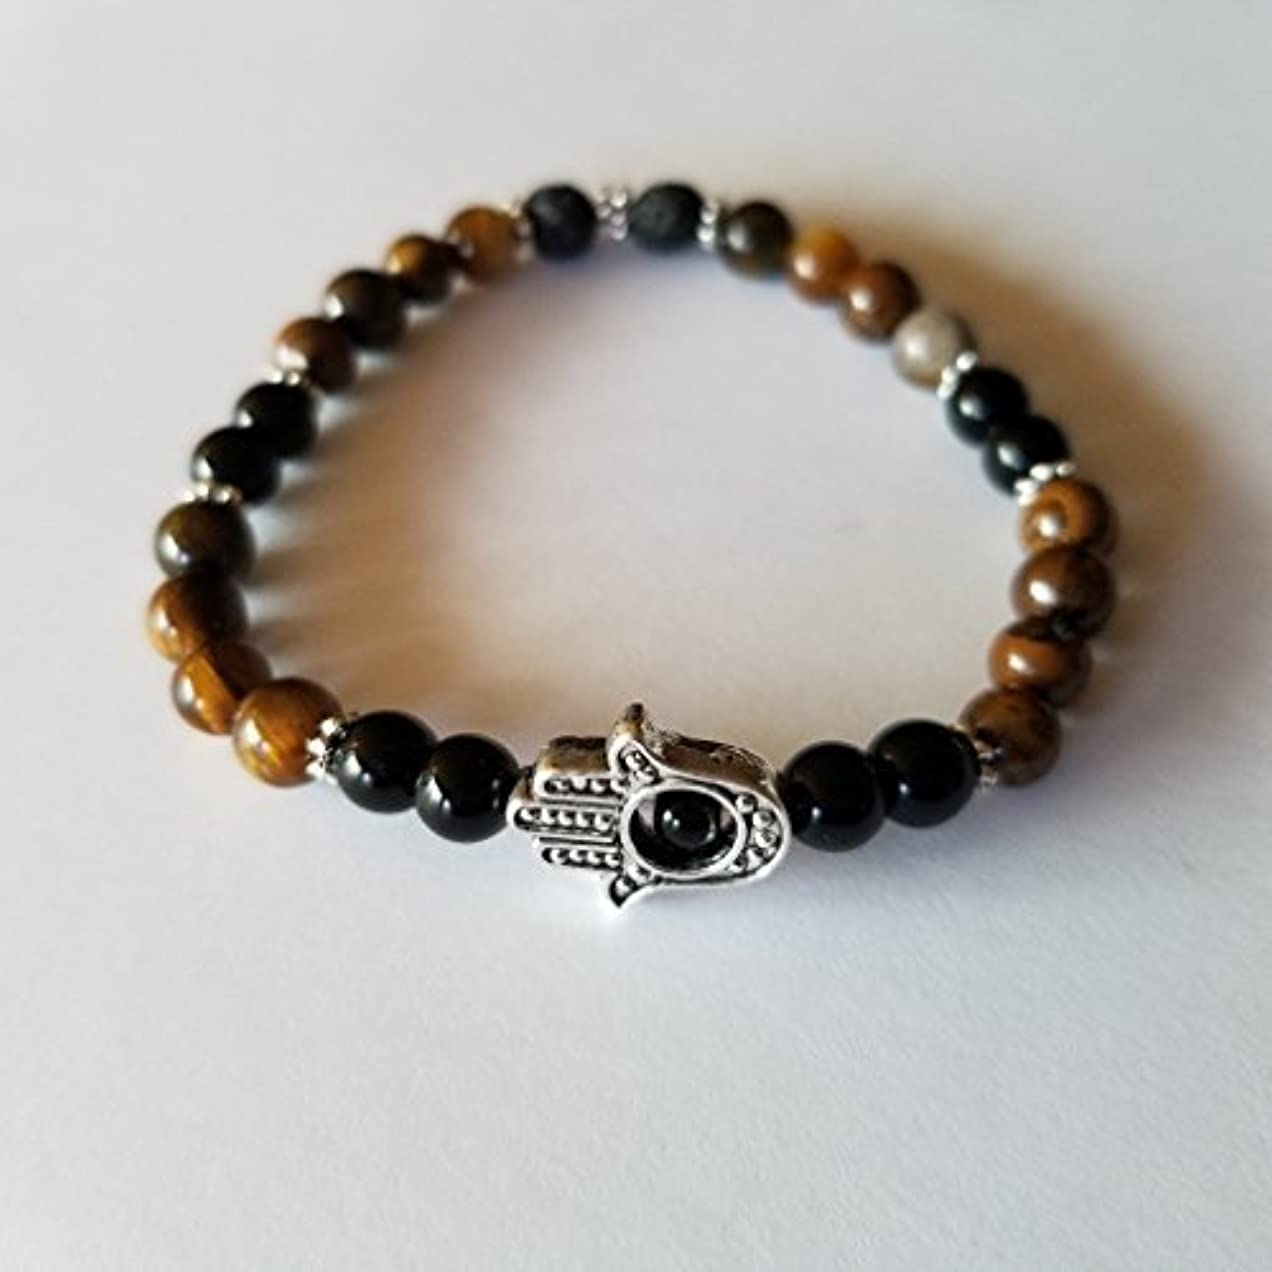 抑圧者メナジェリー日の出Handmade Tiger's Eye Black Jasper and Black Lava Essential Oil Diffuser Bracelet featuring Hamsa Hand - 7 [並行輸入品]